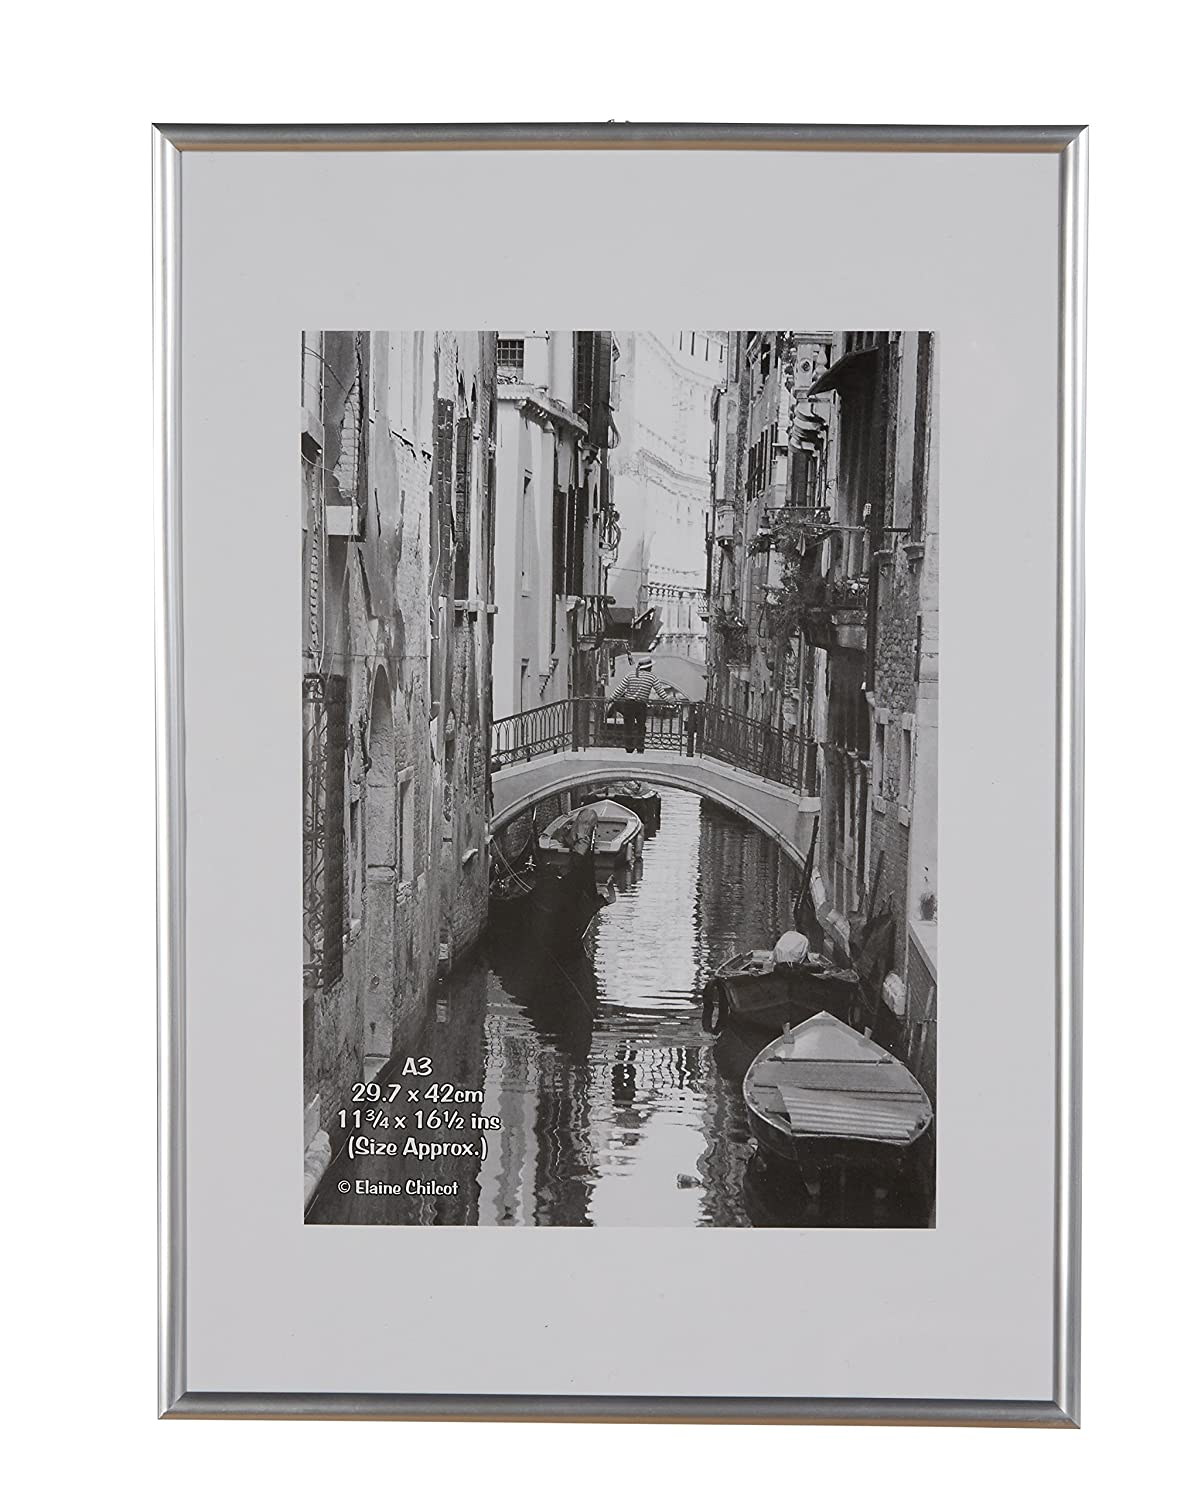 The photo album company 30 x 42 cm a3 photo frame silver amazon the photo album company 30 x 42 cm a3 photo frame silver amazon kitchen home jeuxipadfo Image collections